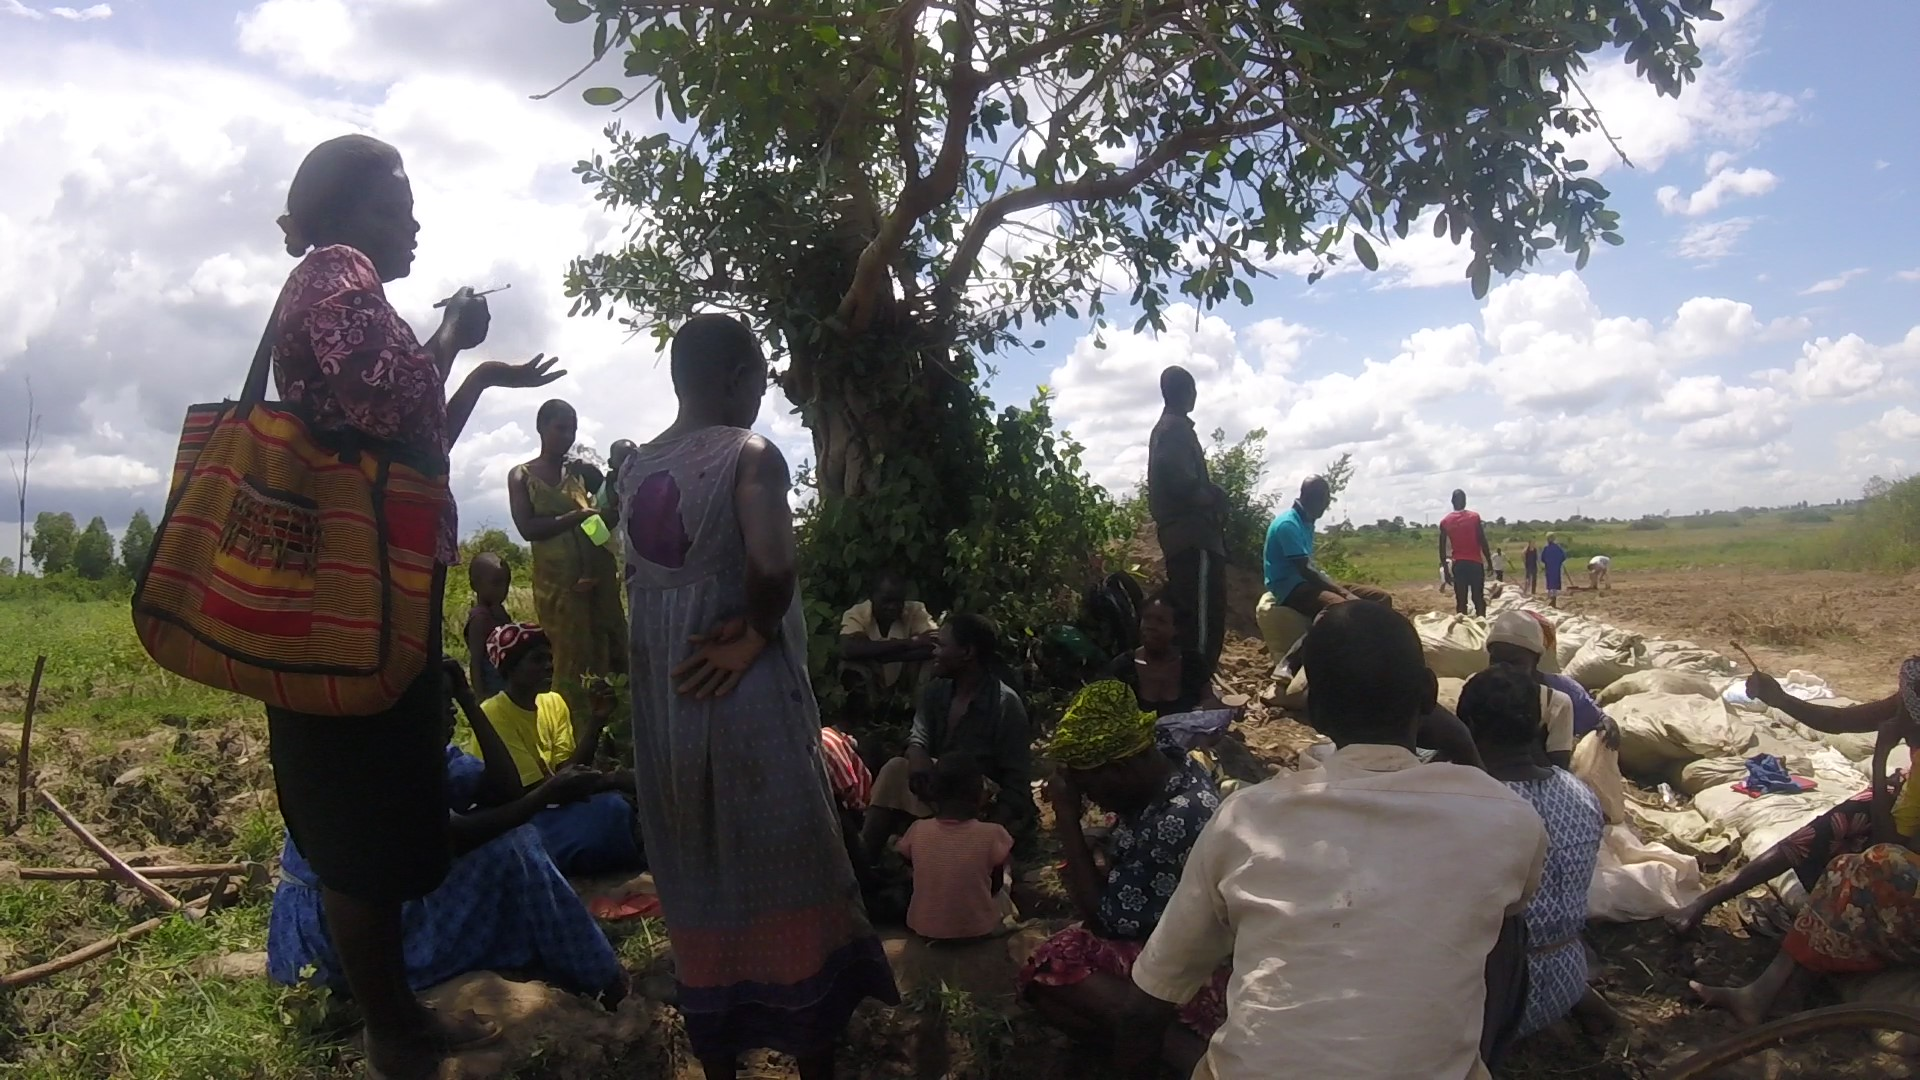 Helen Acuku (left) facilitates a group discussion during a group field work day at Aloet.